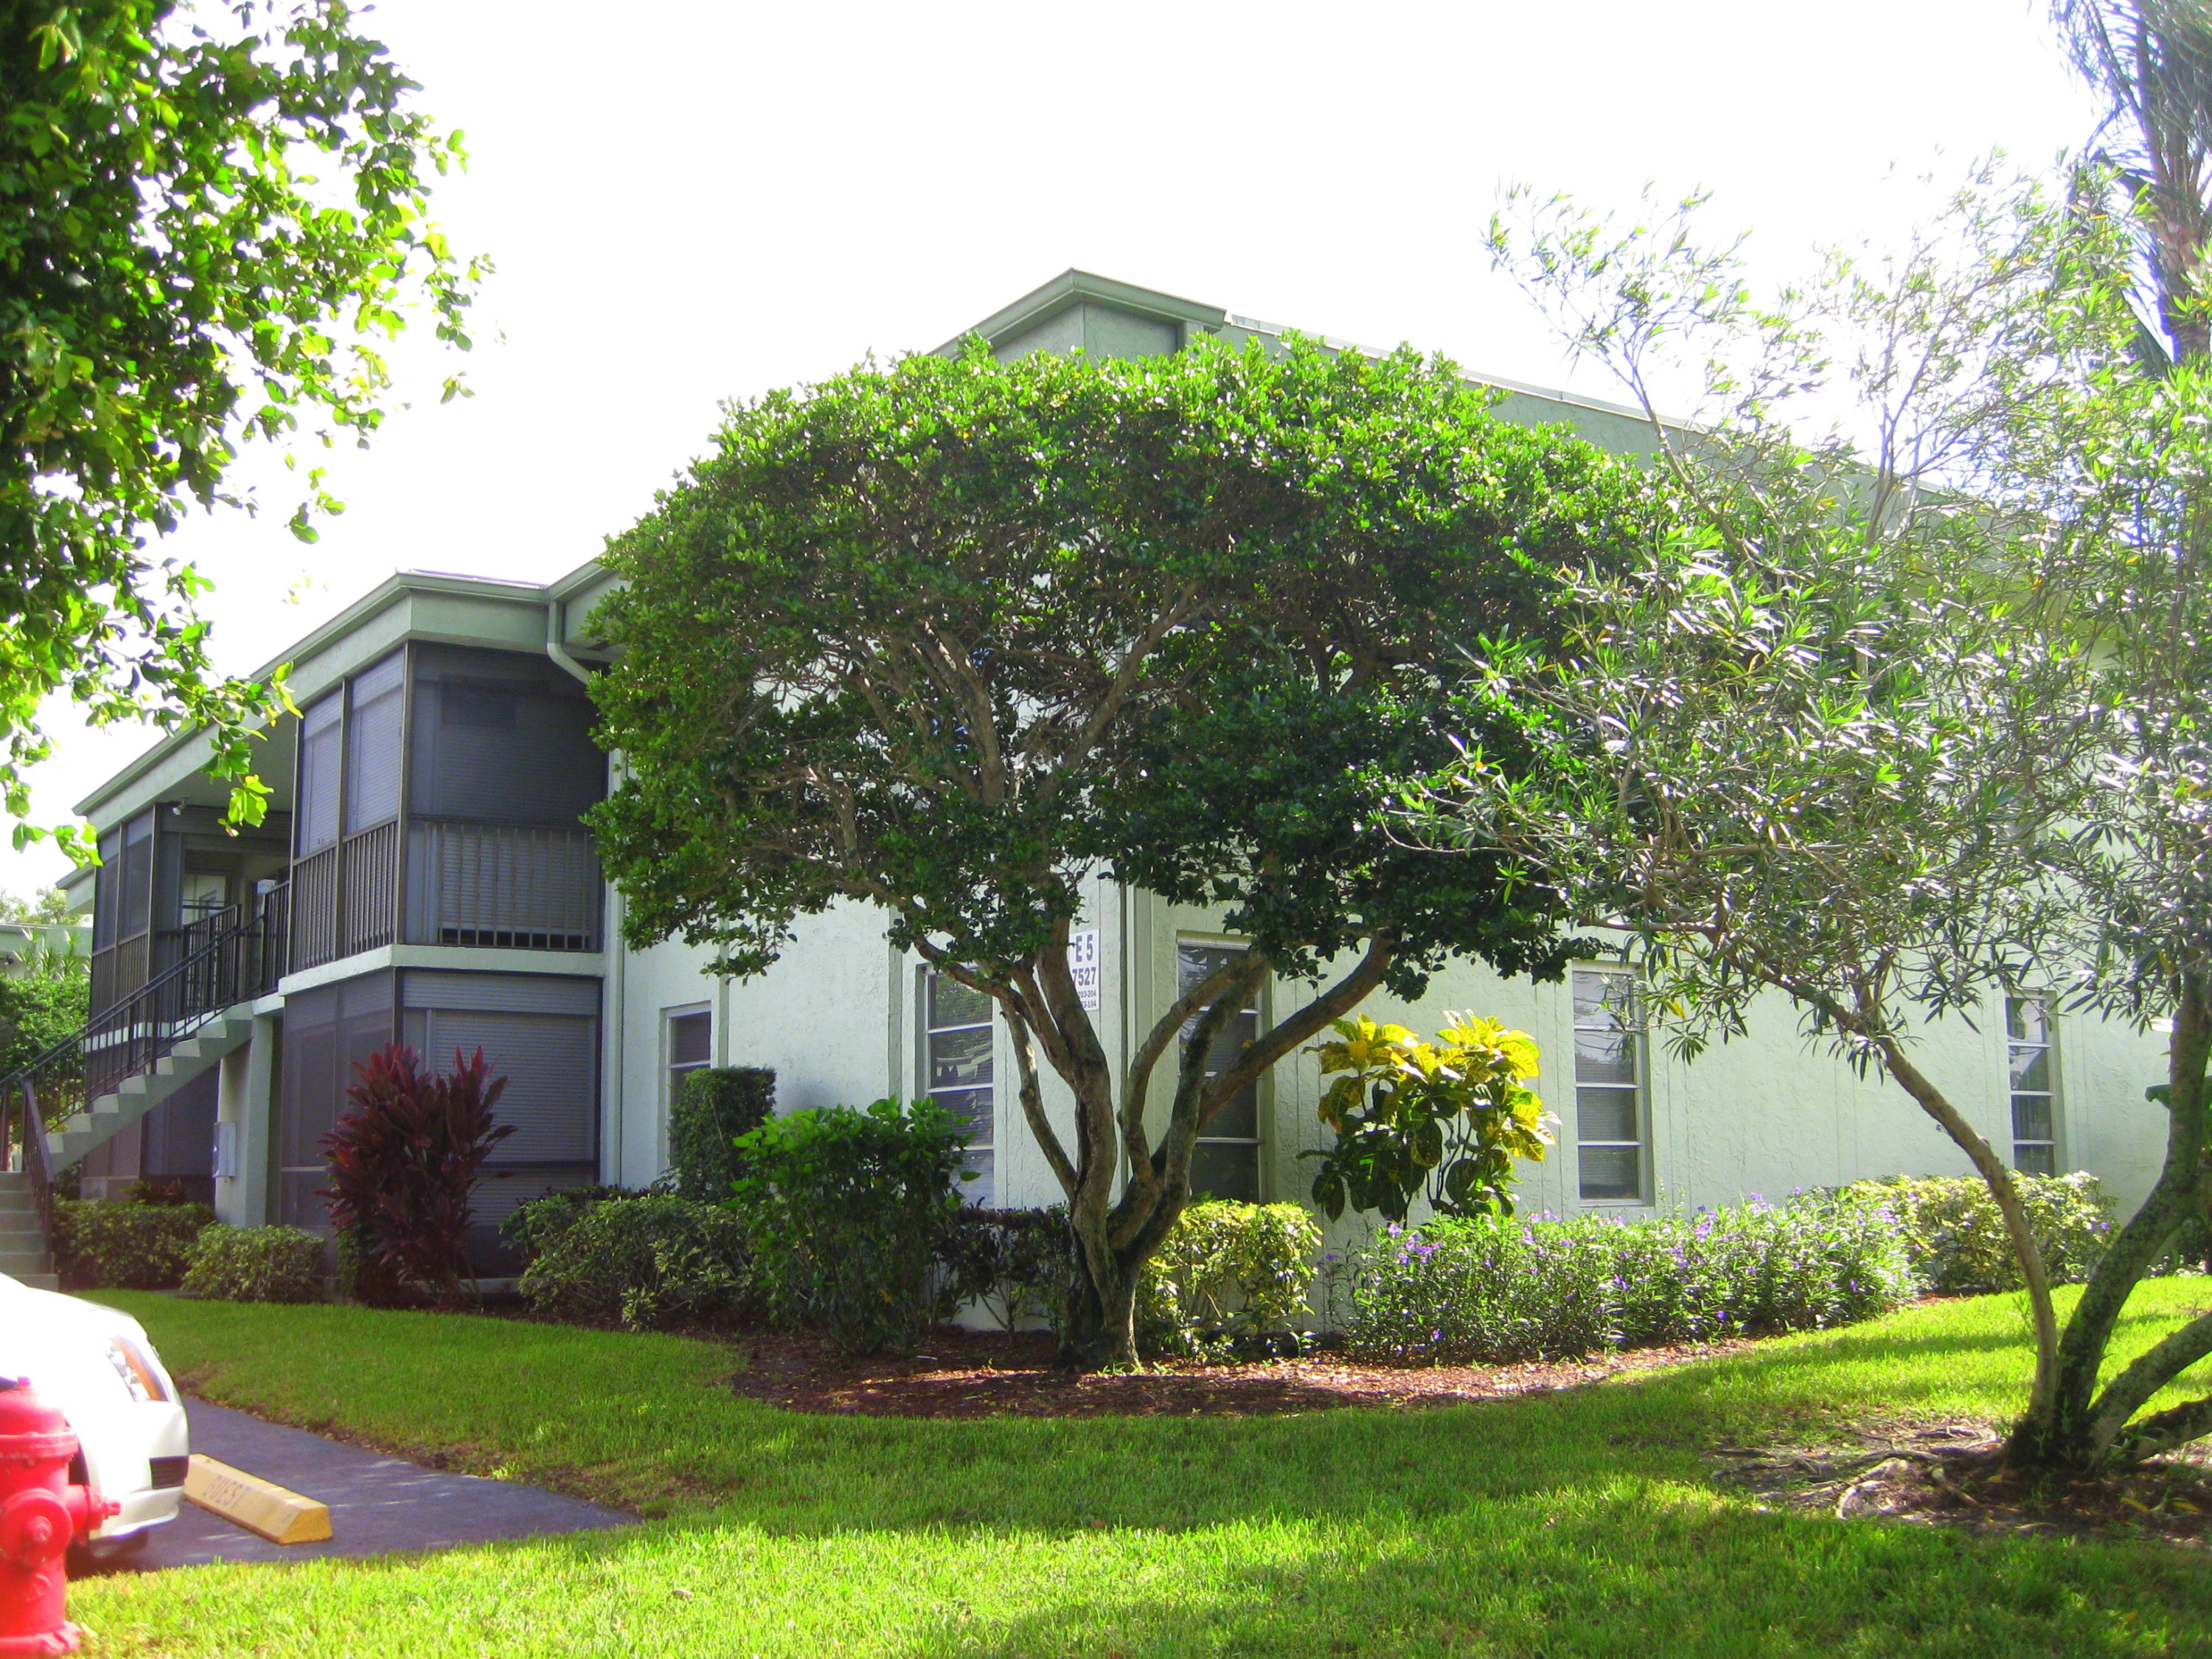 7527 Oriole Boulevard, Delray Beach, Florida 33446, 1 Bedroom Bedrooms, ,2 BathroomsBathrooms,Residential,for Rent,EVERGREEN - VILLAGES OF ORIOLE,Oriole,RX-10586240, , , ,for Rent